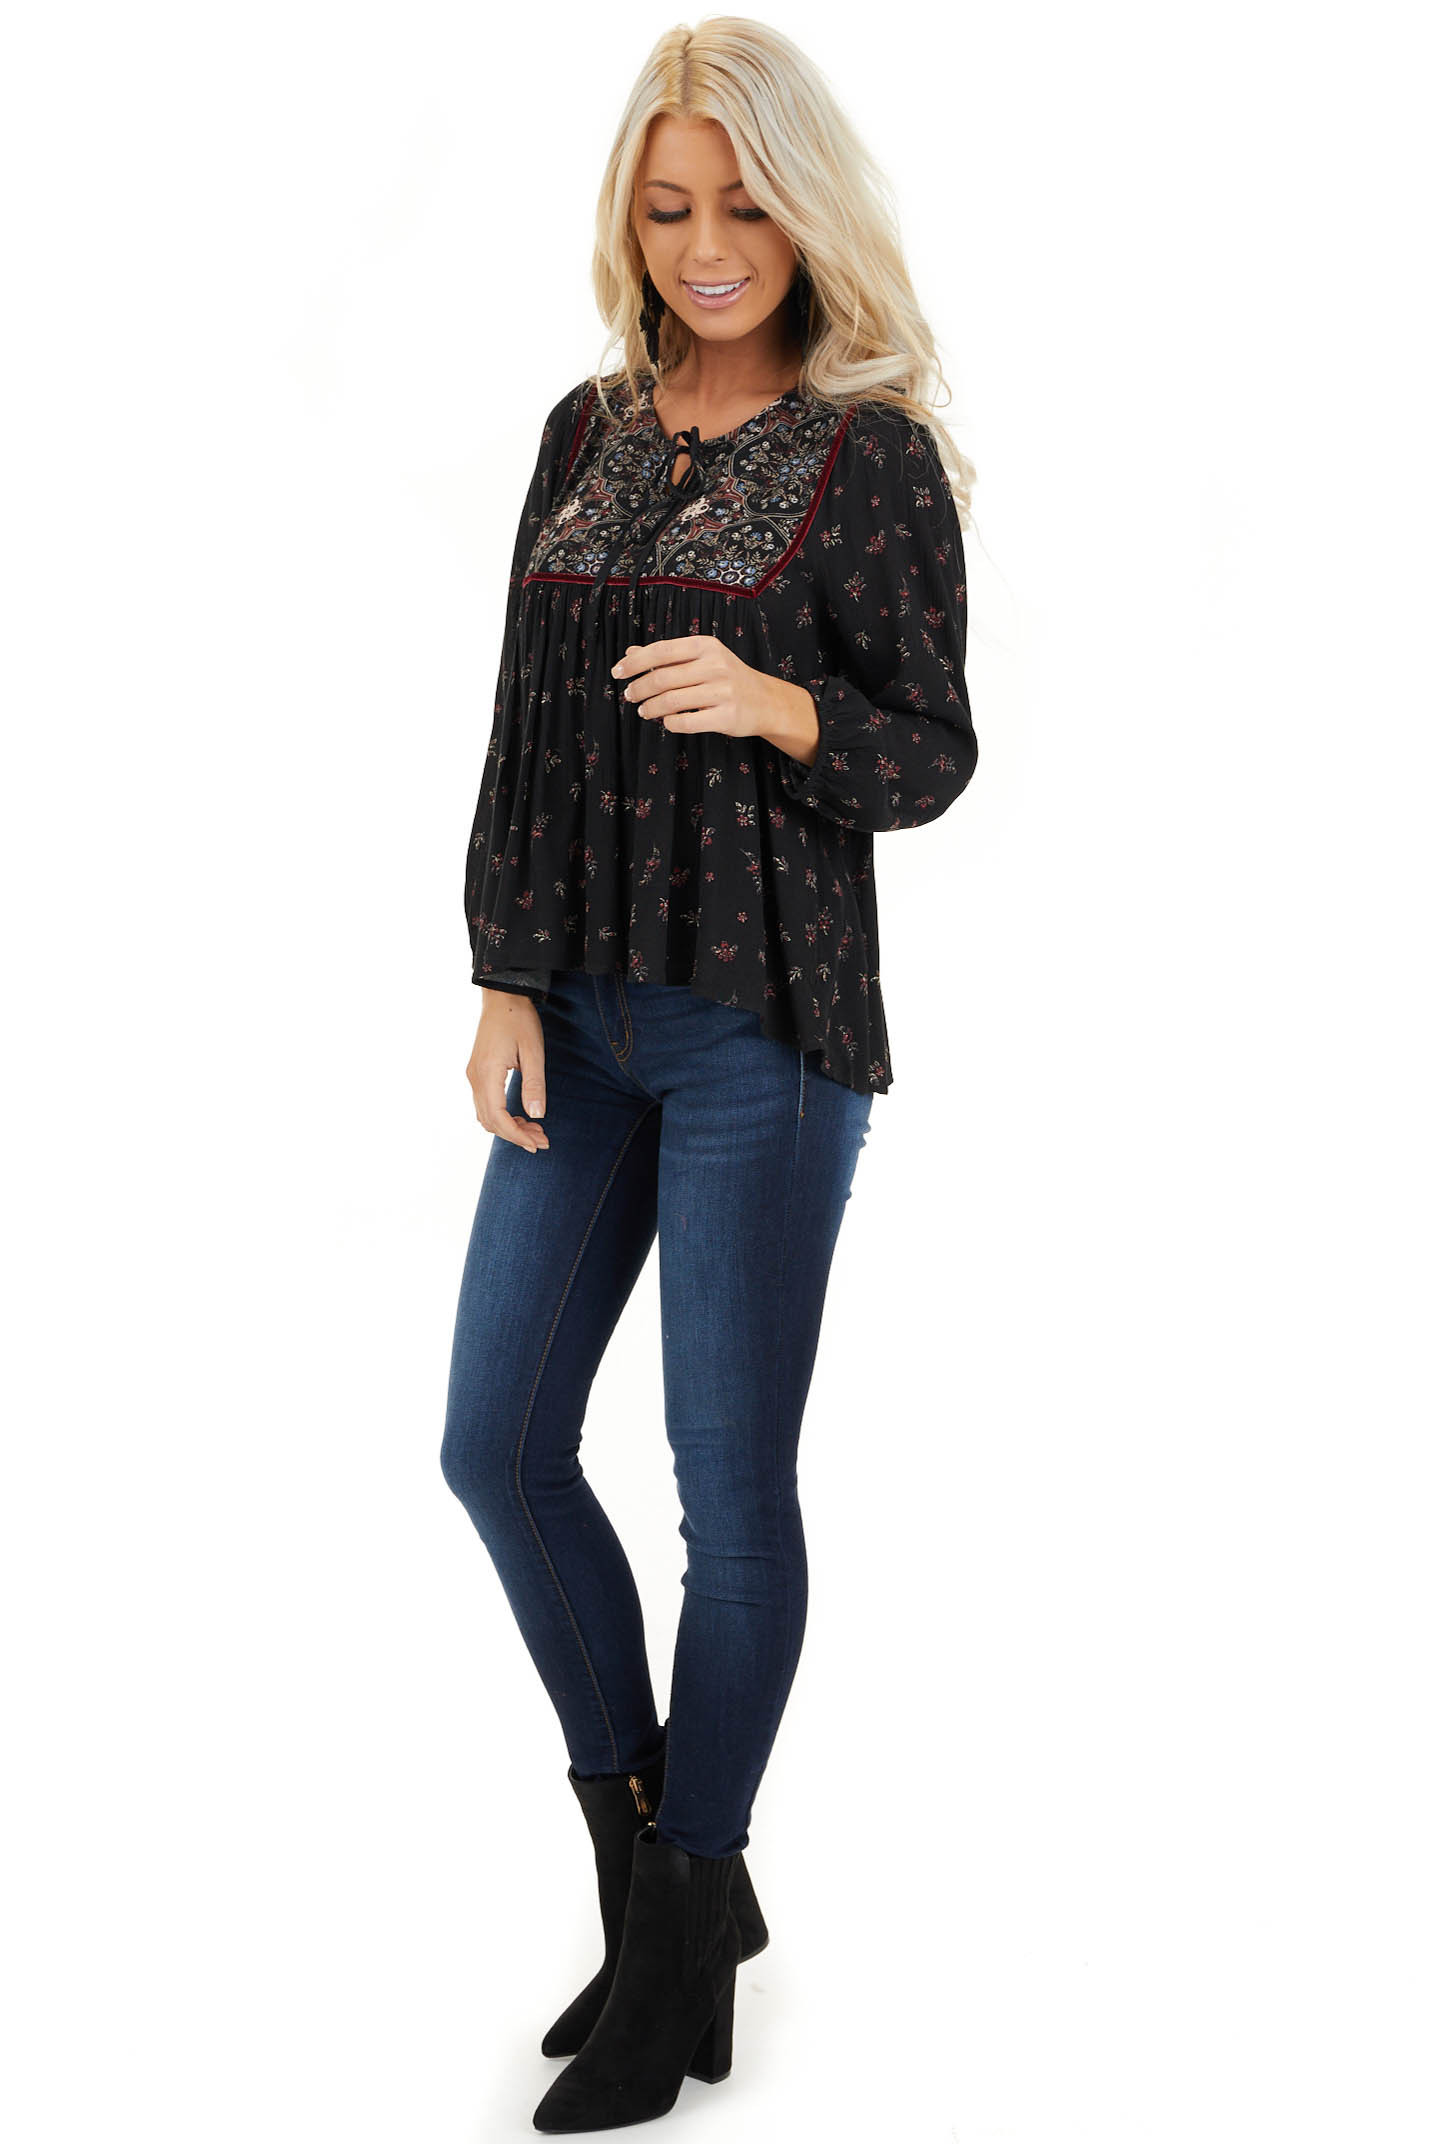 Onyx Black Floral Print 3/4 Sleeve Peasant Top with Tie front full body